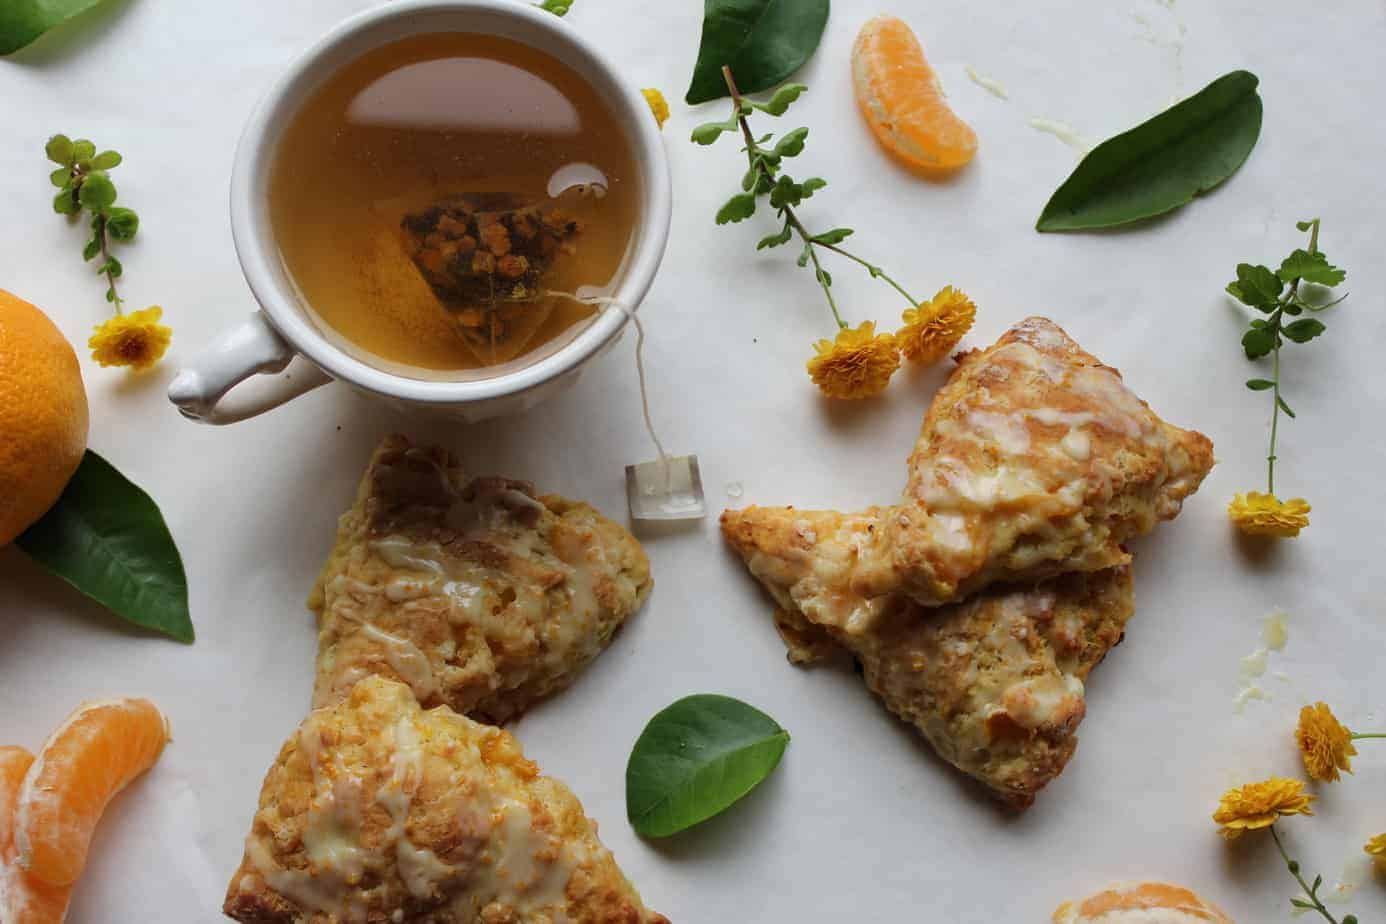 Mandarin-Orange-Scones-and-Tea